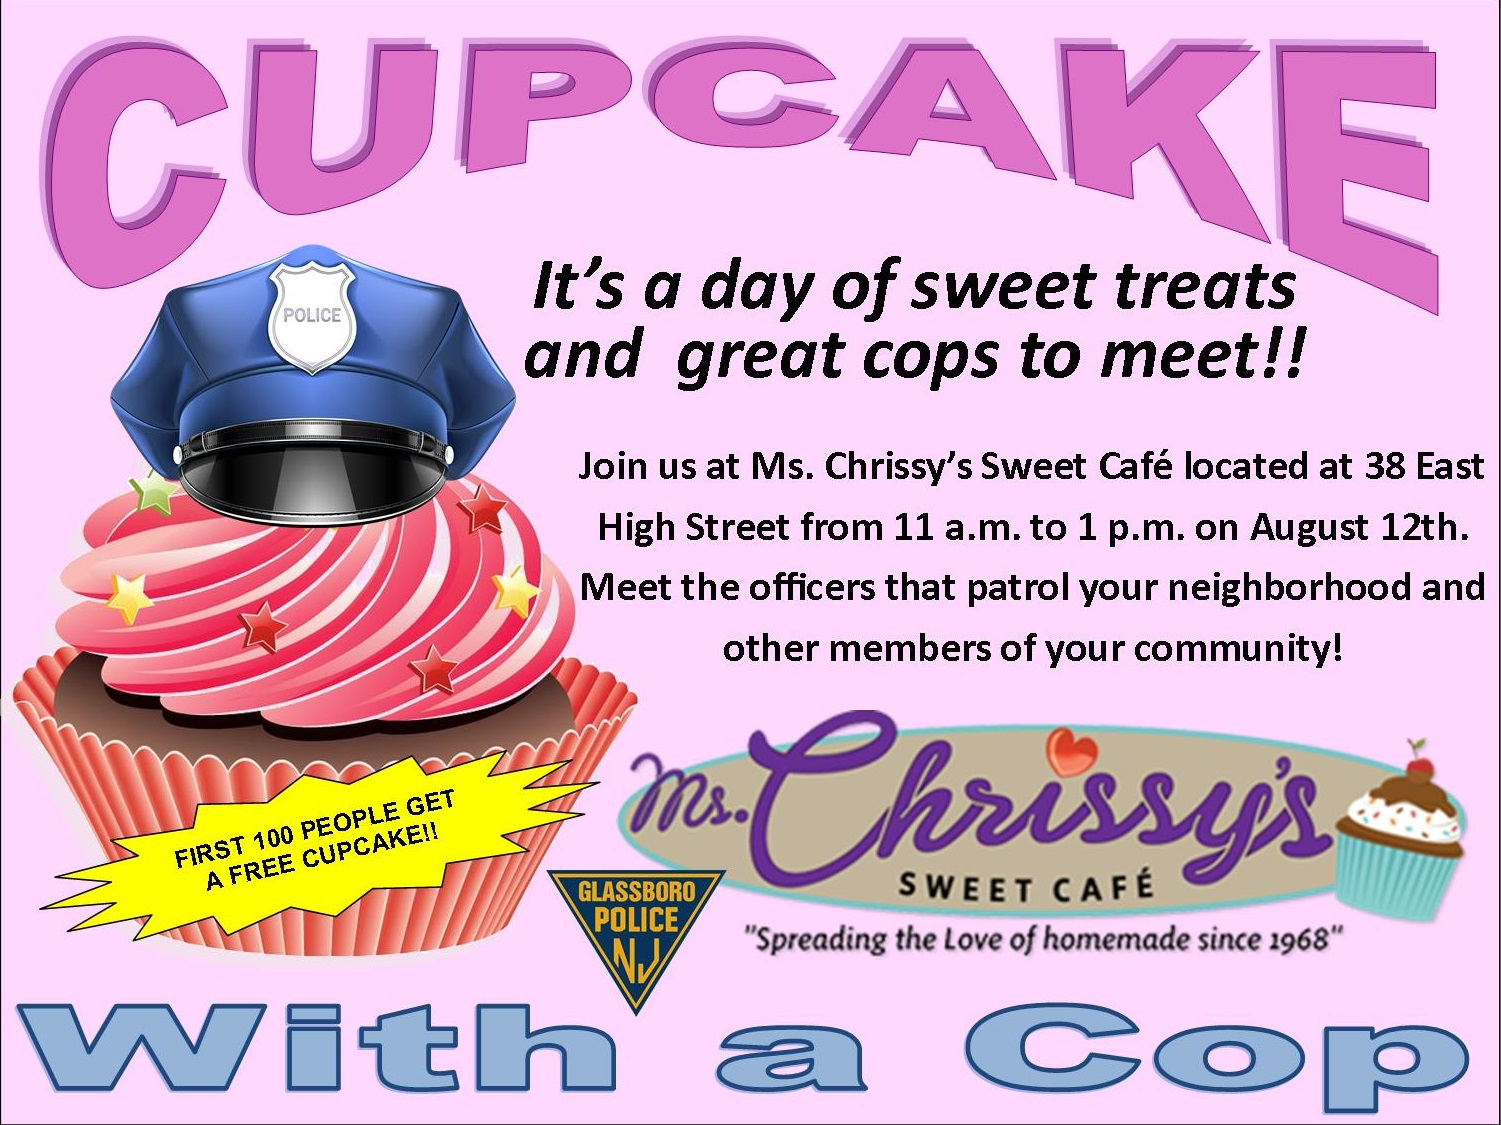 cupcake with a glassbroo cop